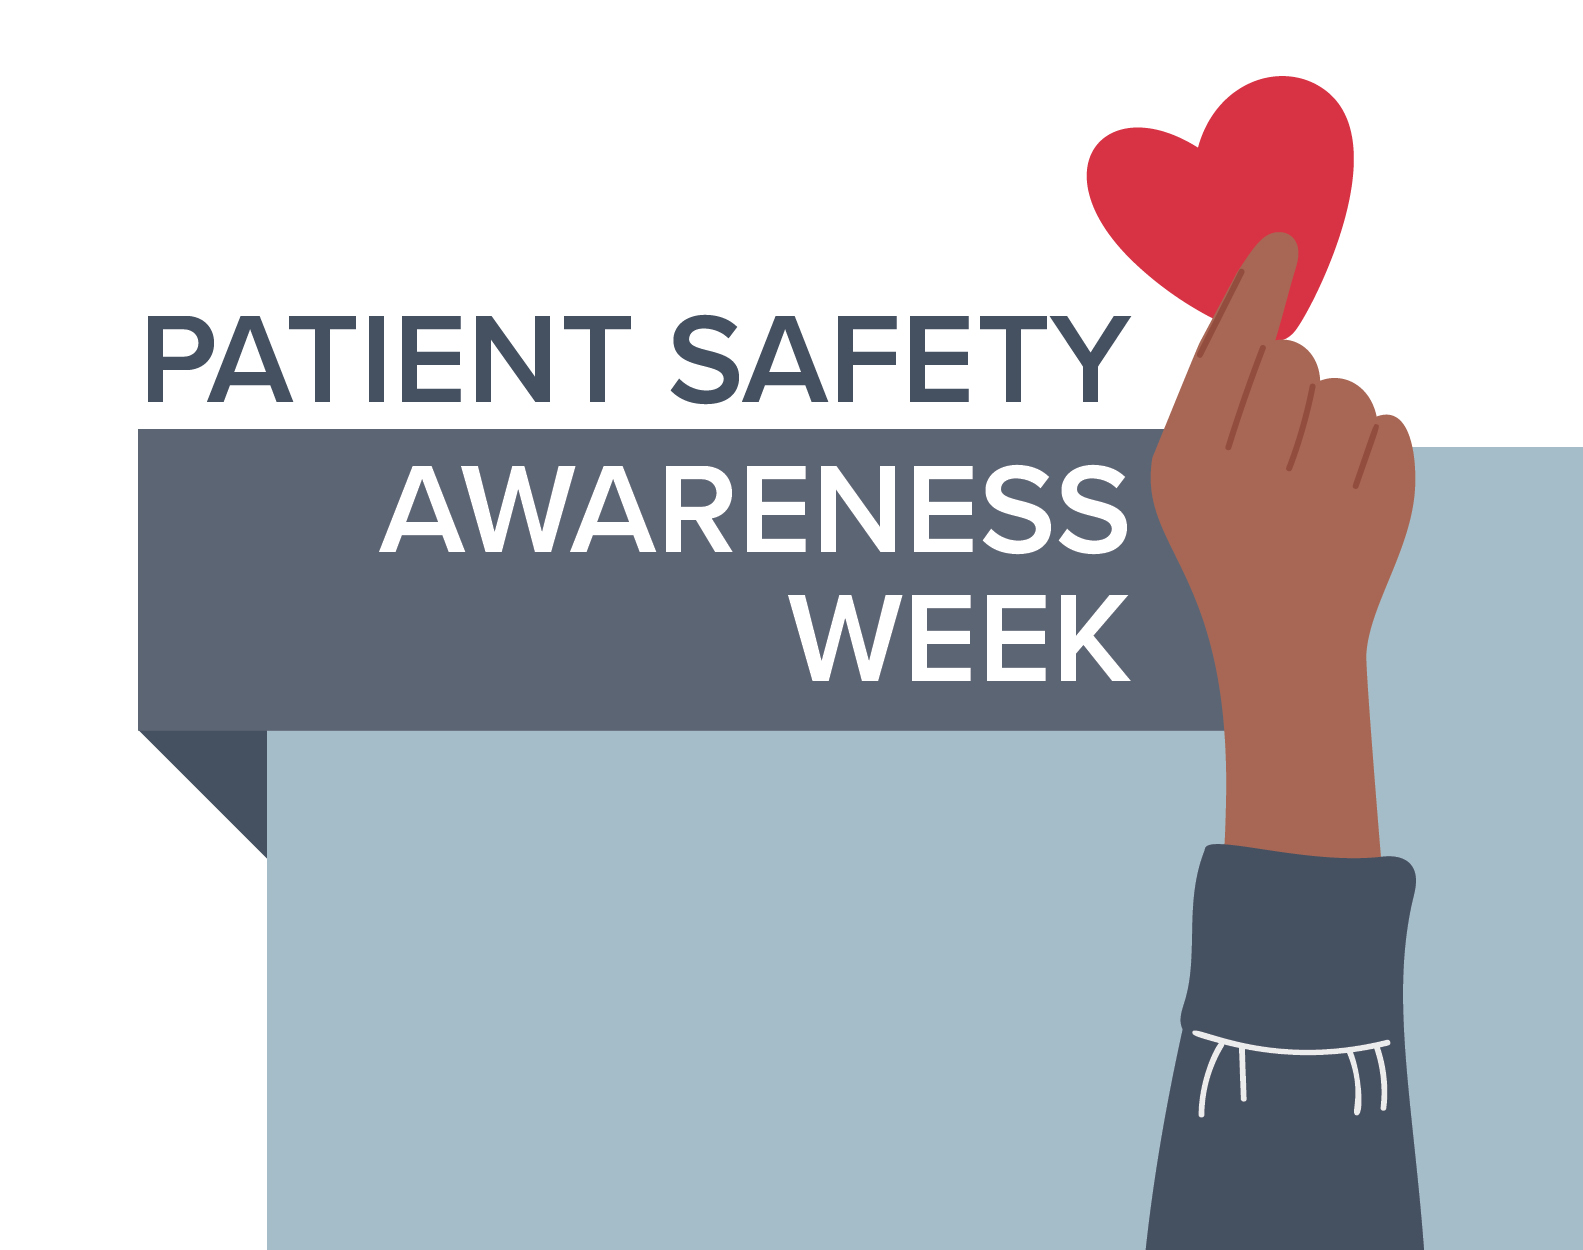 3B_Scientific_21-03_Banner_Patient_Safety_Awareness_Week_OVERVIEWSMALL.jpg